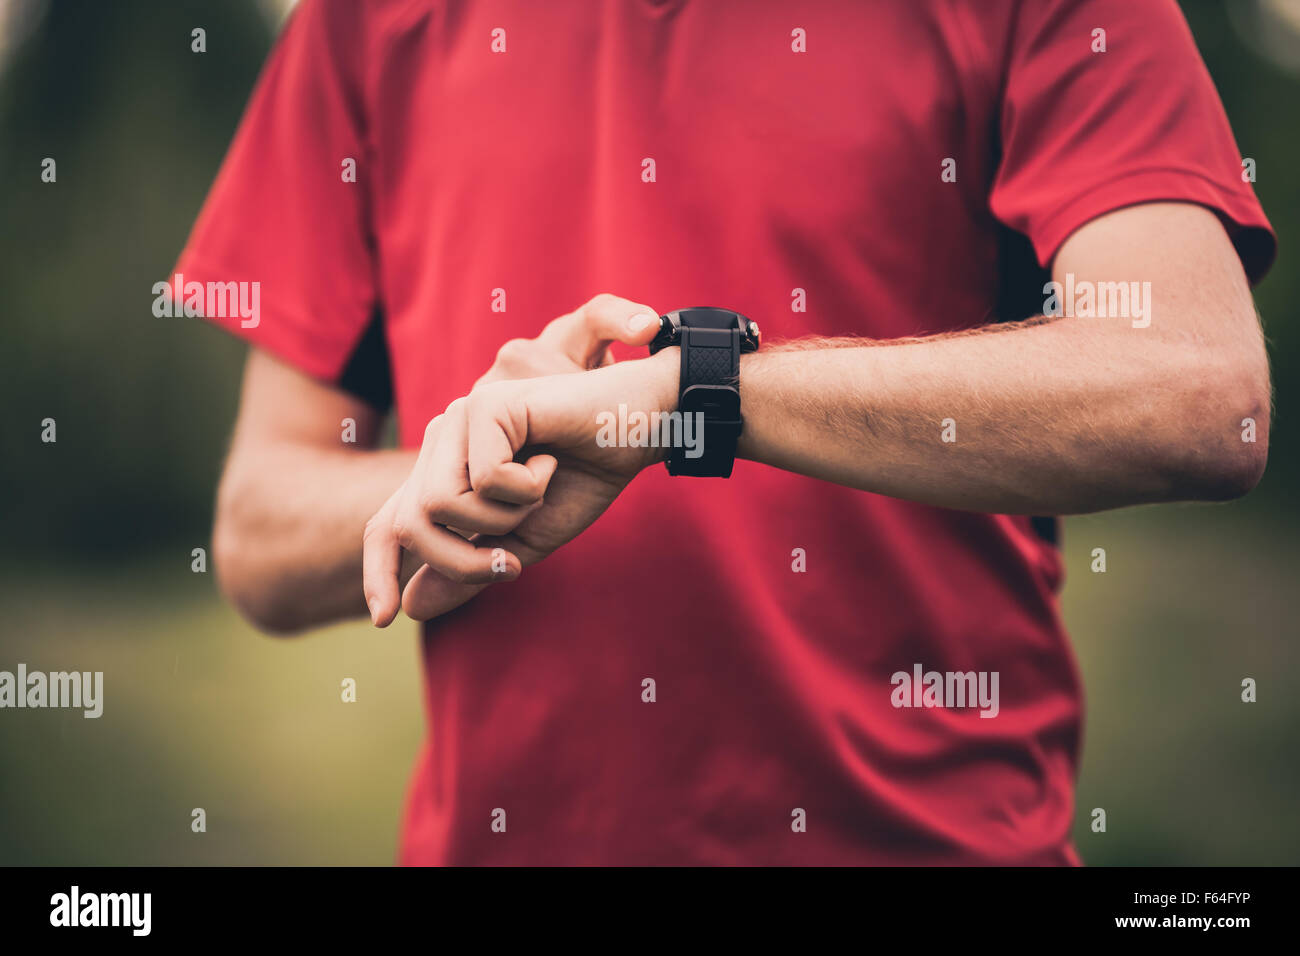 Runner using heart rate monitor training running, smartwatch checking performance or GPS. Man athlete looking at - Stock Image